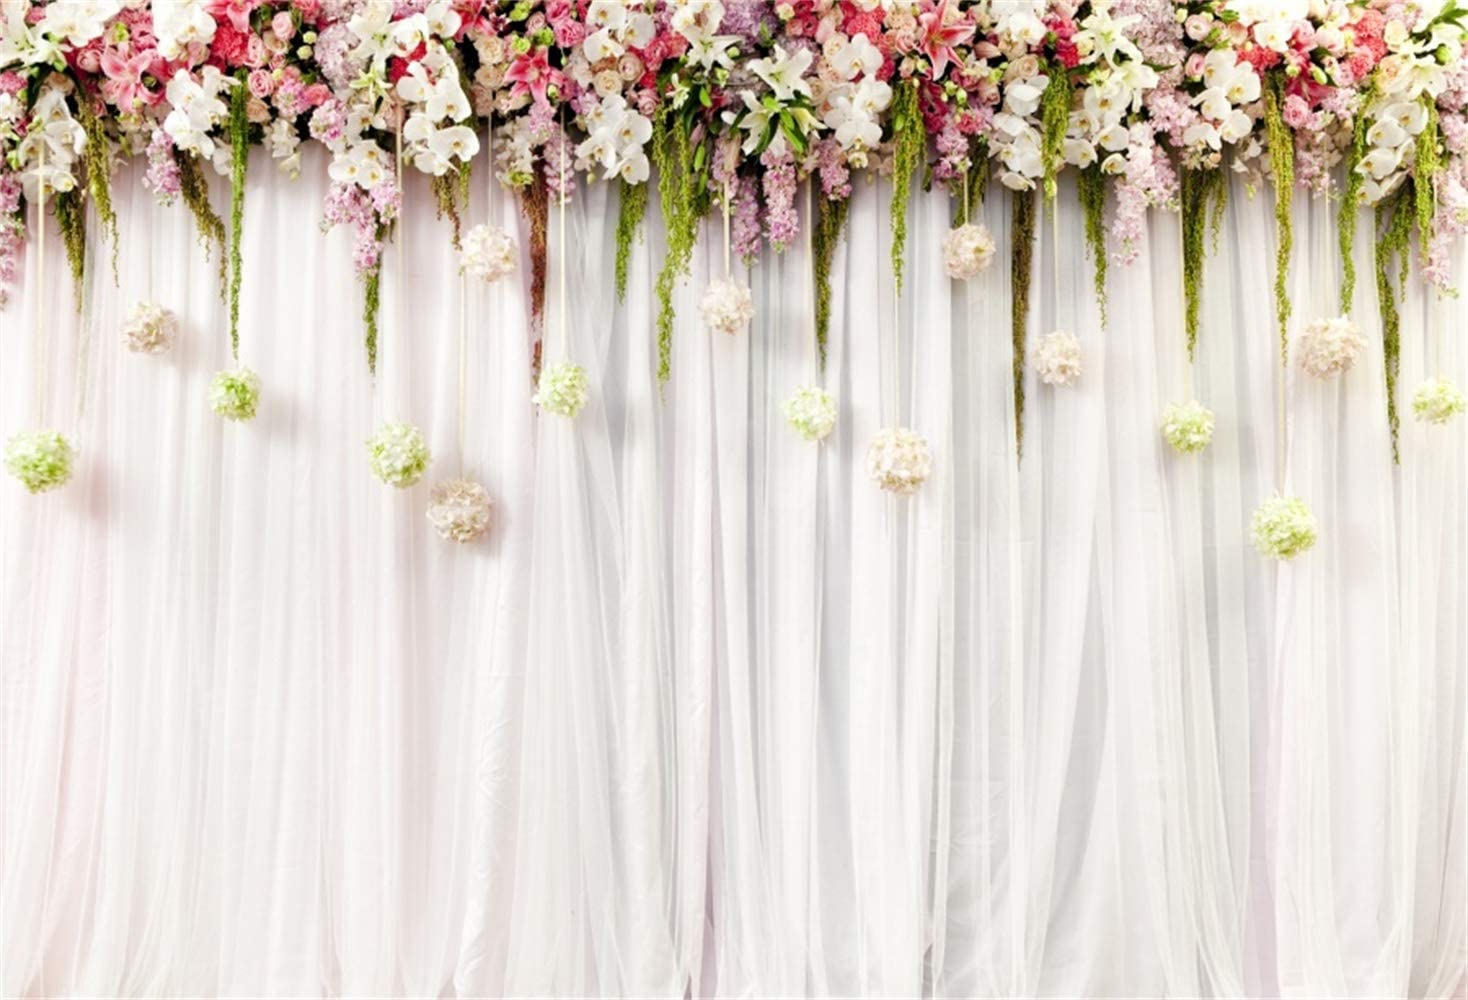 7x10 FT Love Vinyl Photography Backdrop,Romantic Floral Background with Letters of The Word Love with Ornamental Design Background for Party Home Decor Outdoorsy Theme Shoot Props